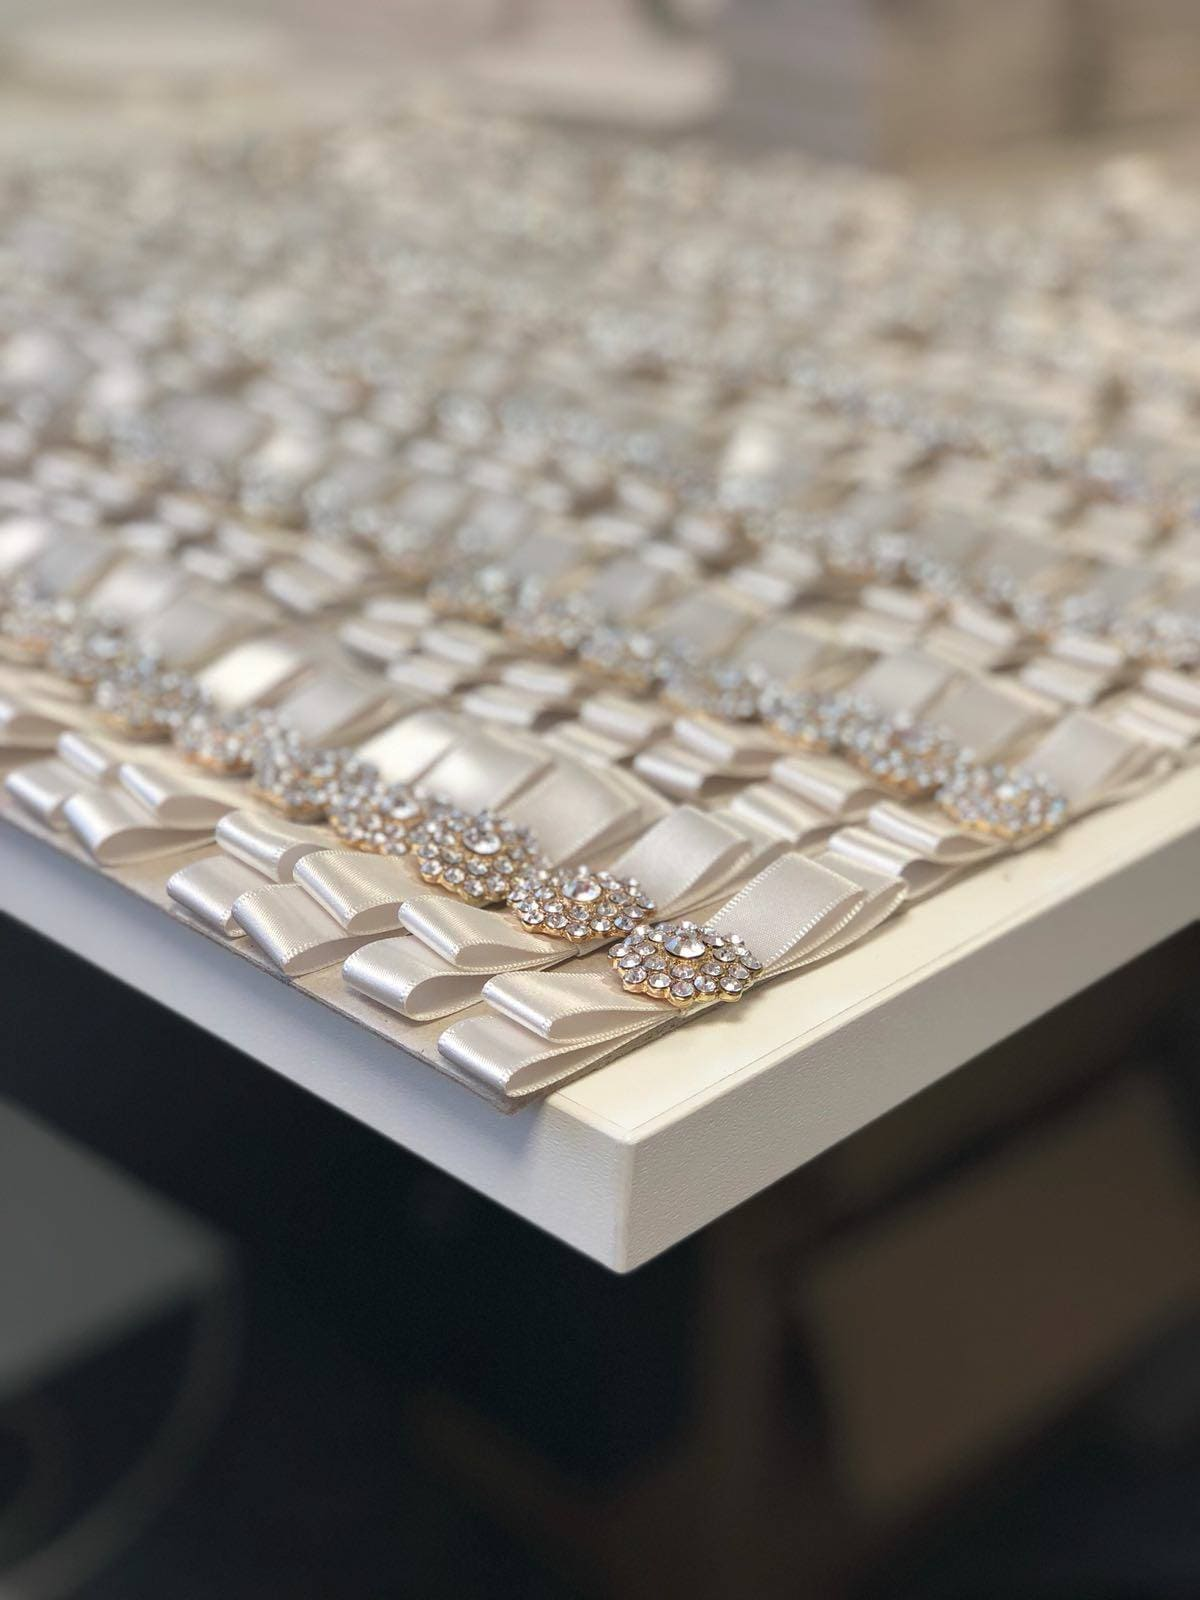 Wedding Business Dollybird Stationery Are Living The Dream At Storage Vault Work Space - rows and rows of glittering bows